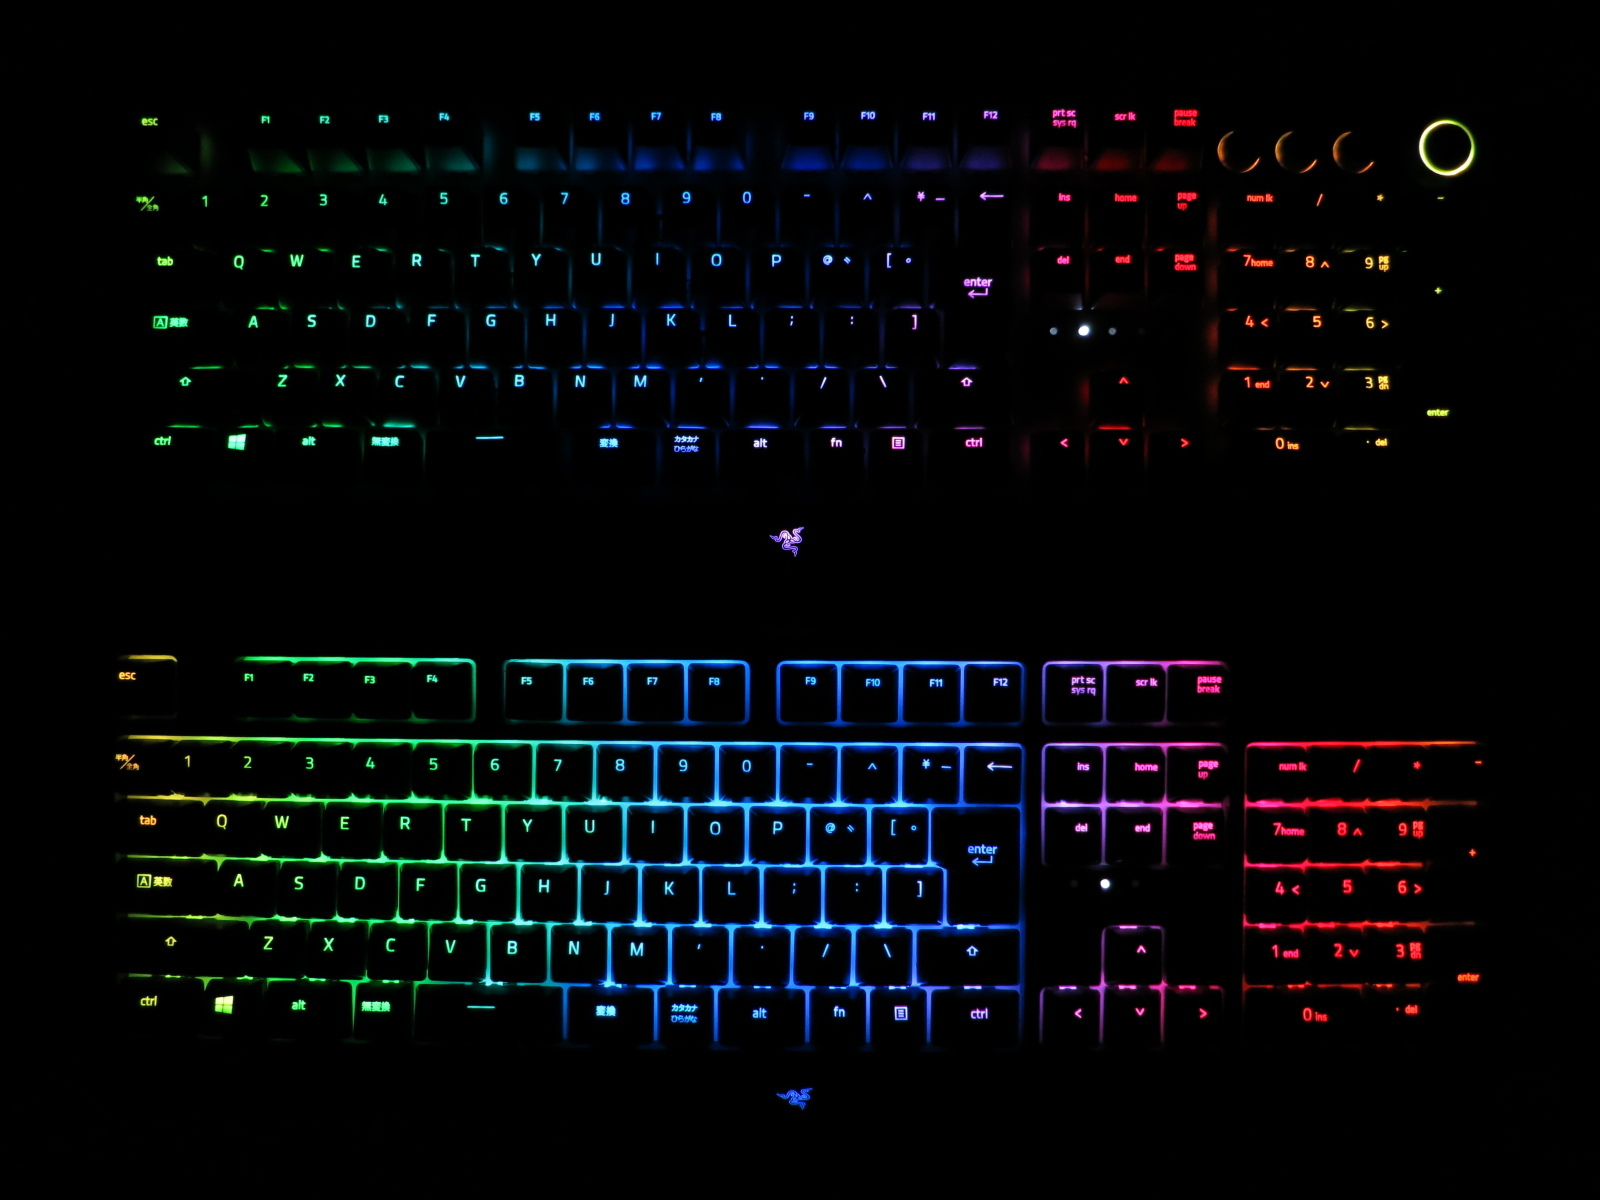 Razer_BlackWidow_2019vsElite_20.jpg